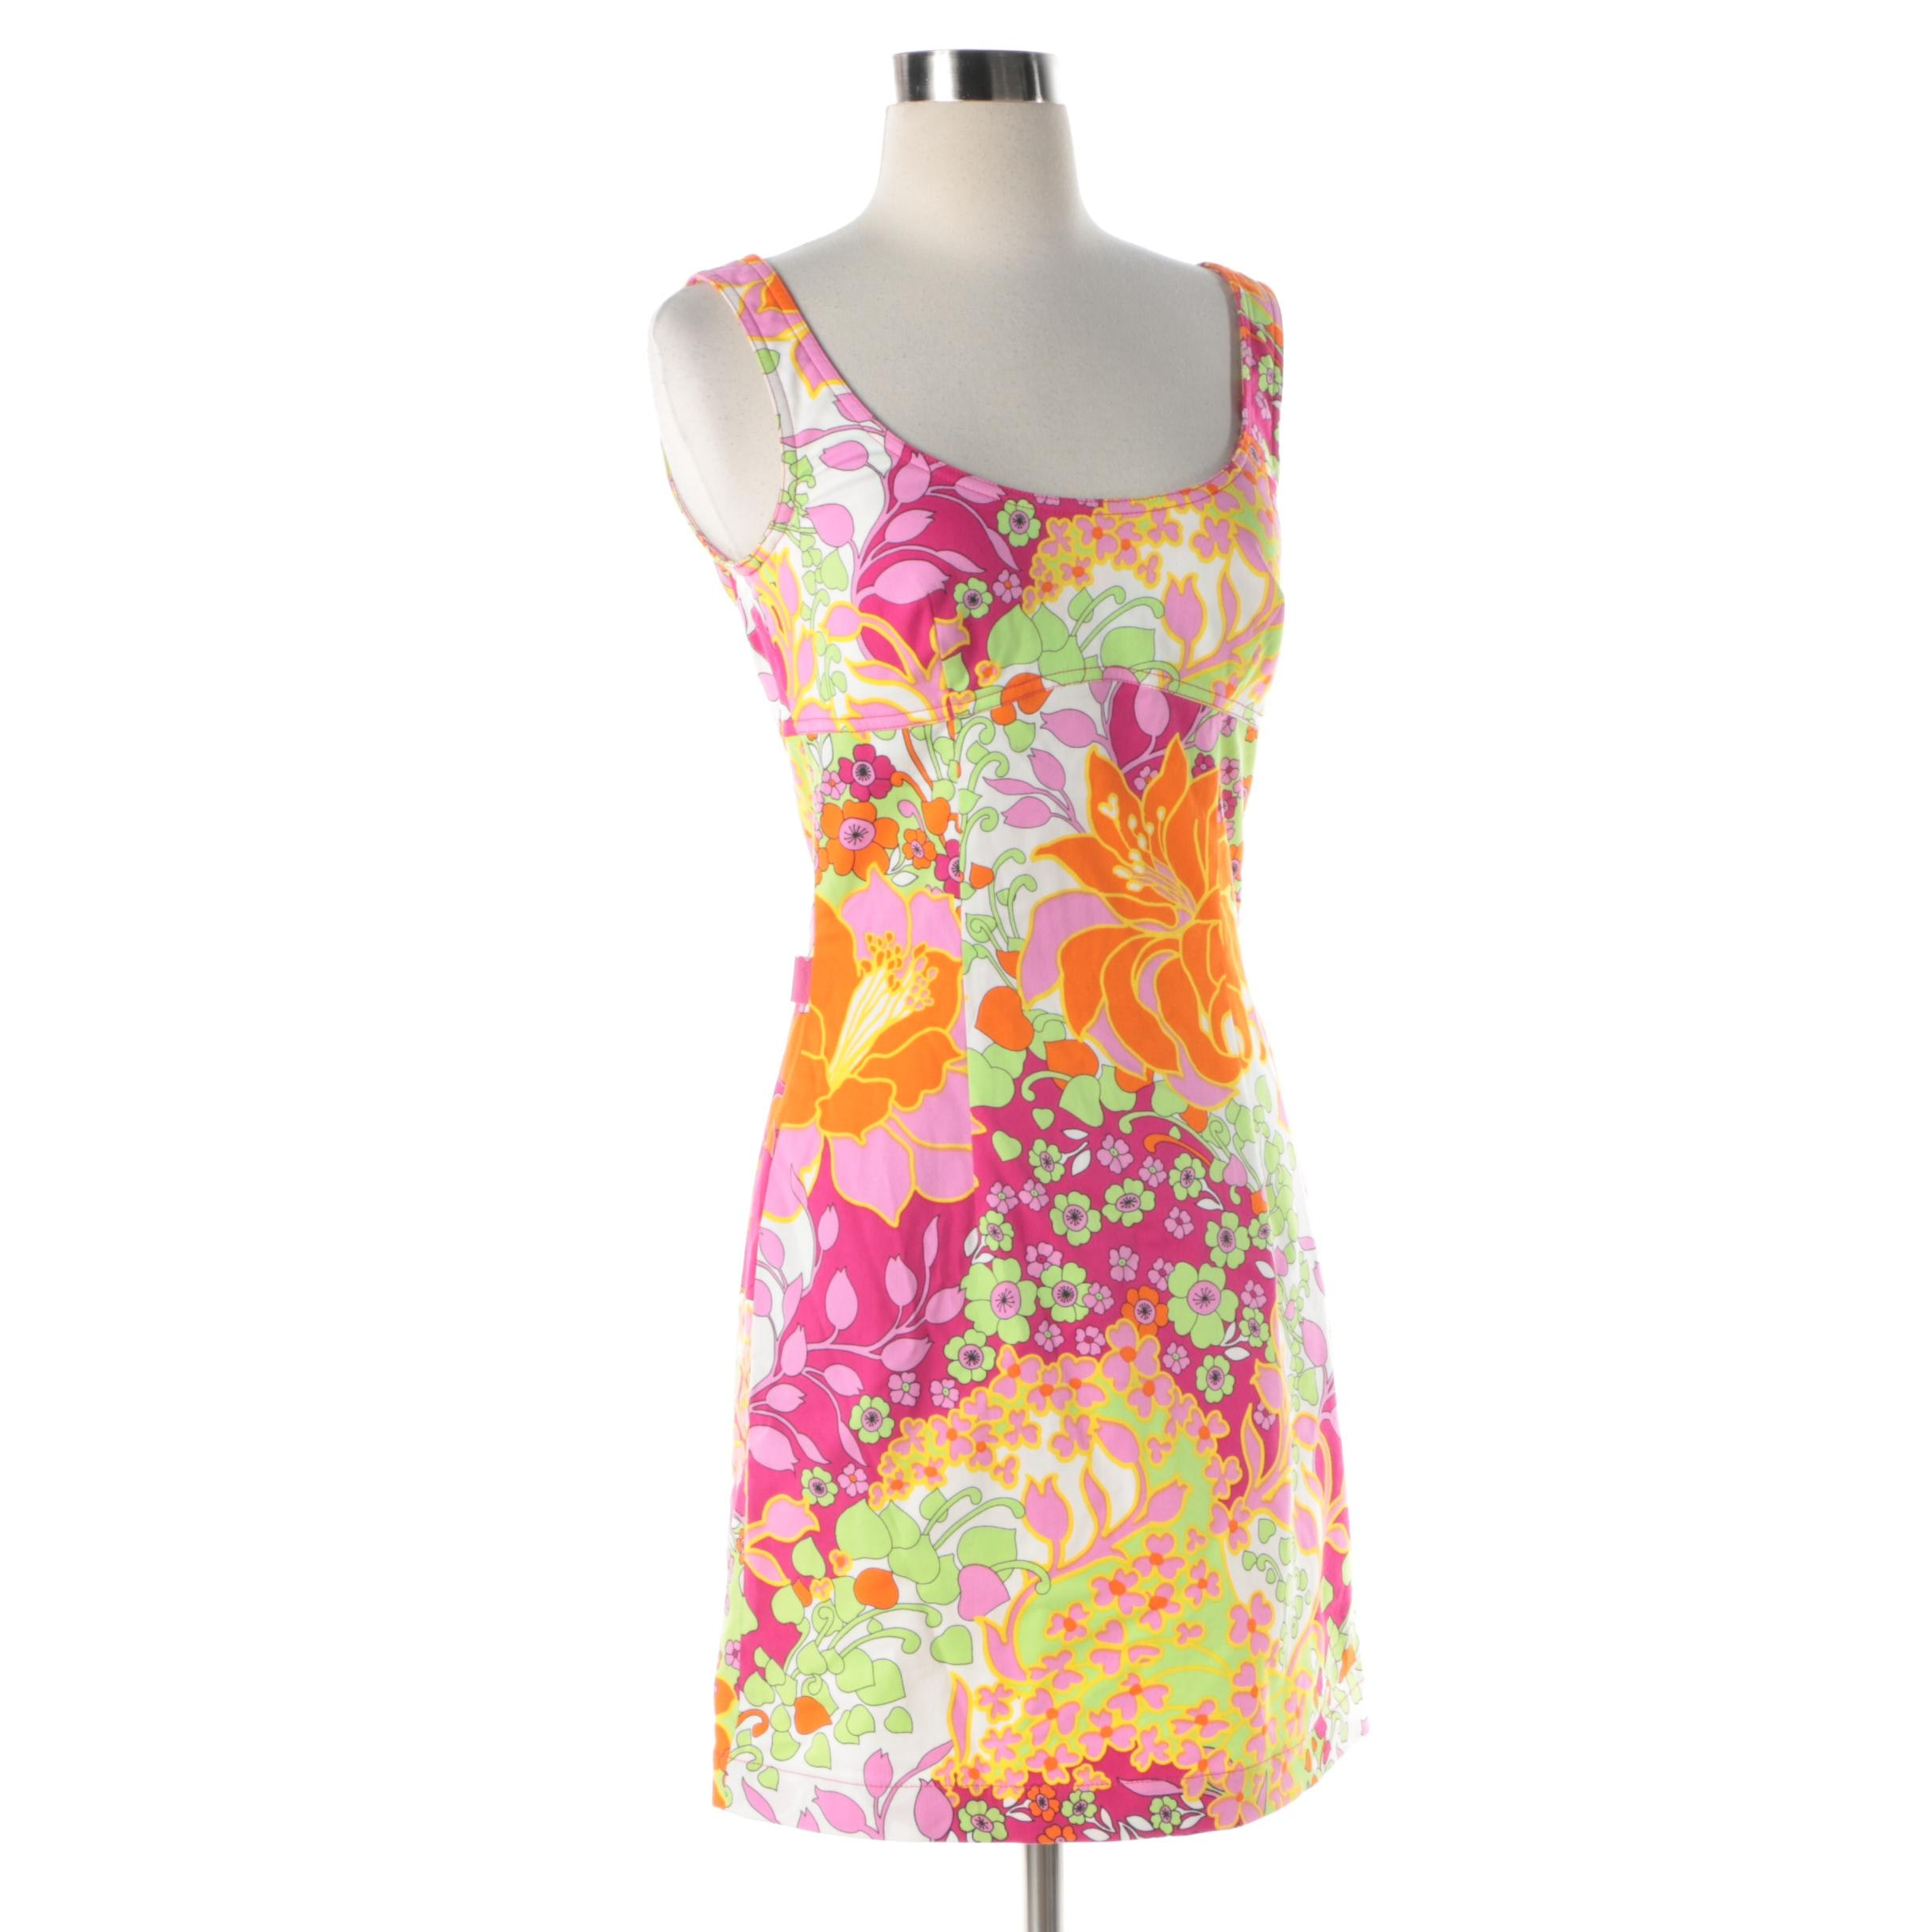 Women's Moschino Jeans Multicolored Floral Print Sleeveless Dress